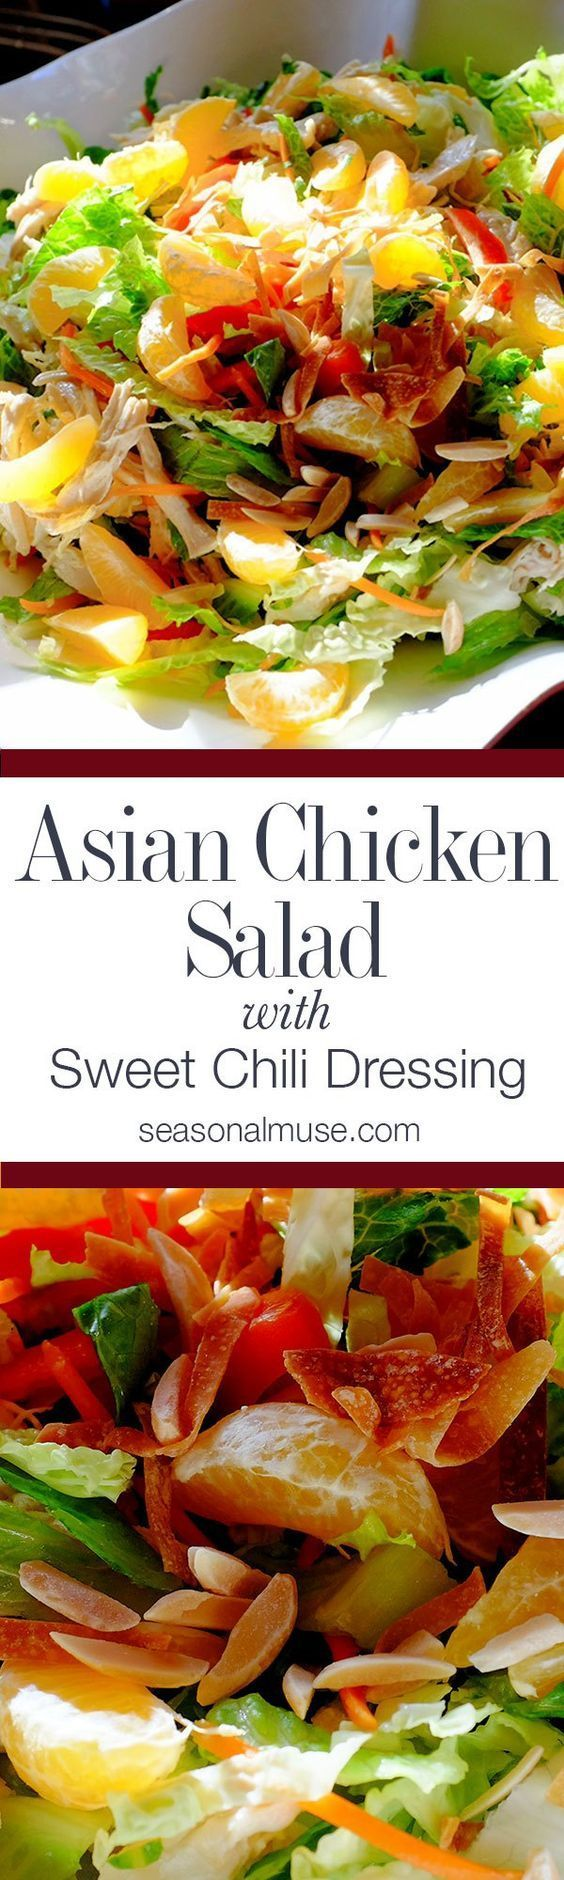 Asian Chopped Salad with fresh mandarin oranges. Easy recipe with chicken, crisp chopped vegetables, baked wonton, almonds, sweet chili dressing.